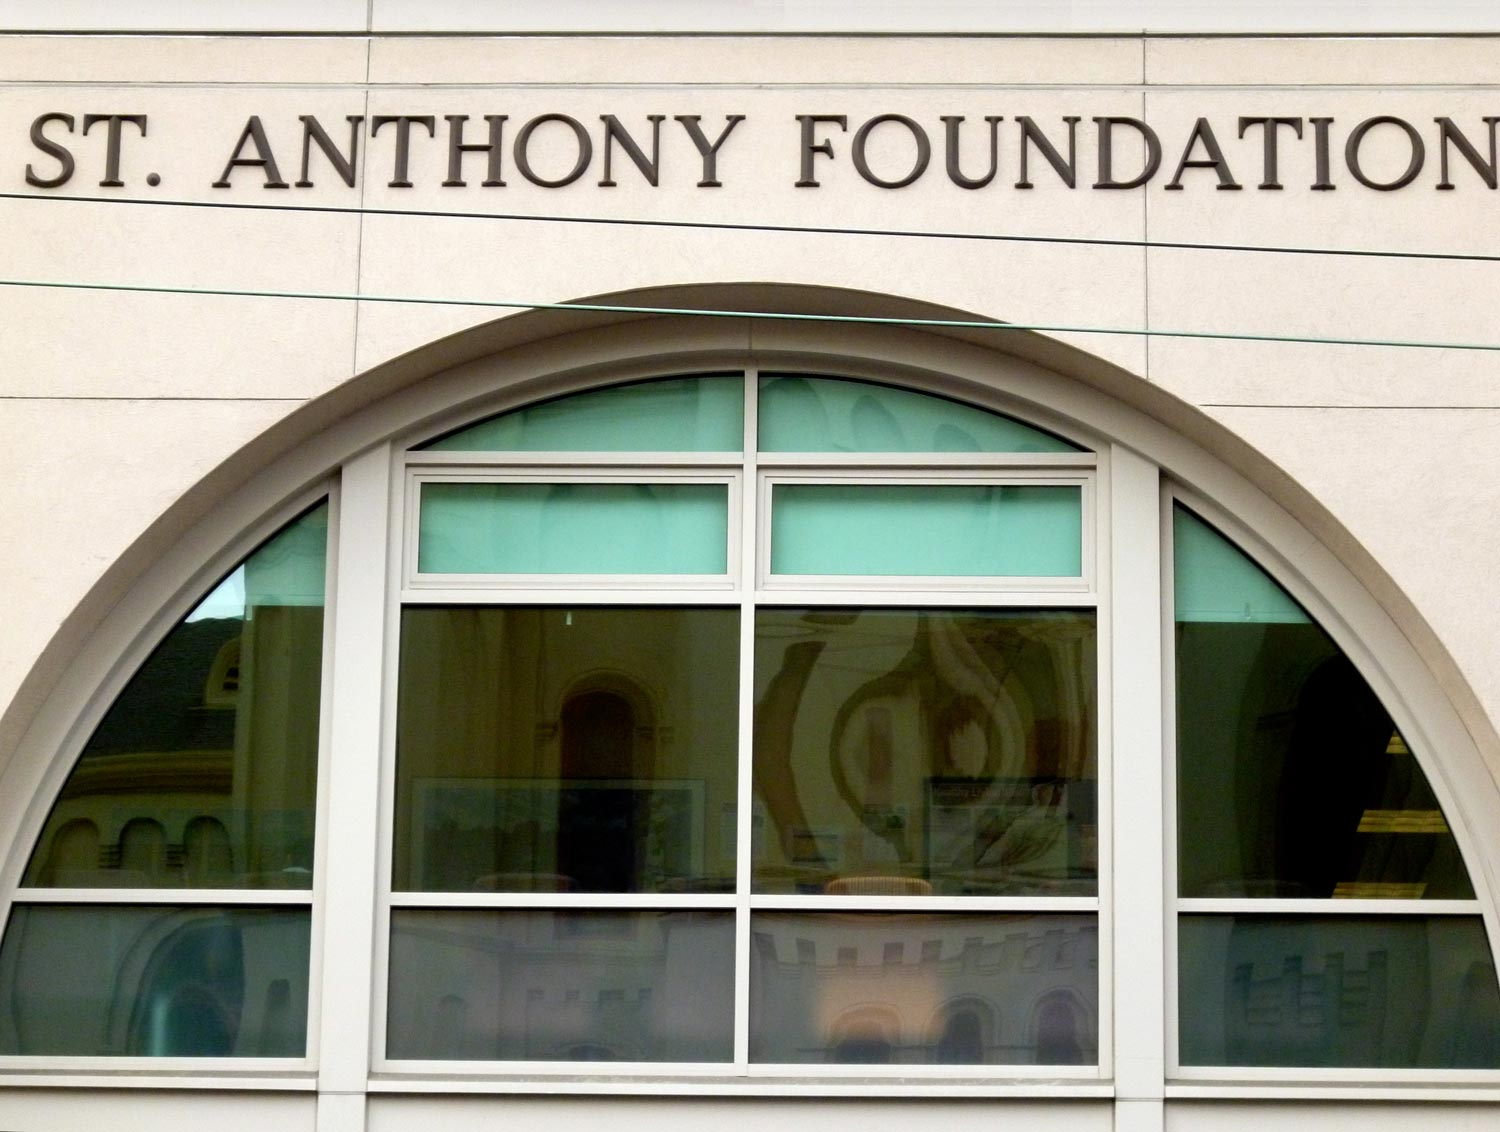 Saint Anthony Foundation   150 Golden Gate Ave   map    1st & 3rd Monday 1:30 - 3:30 pm   ( by reservation only)